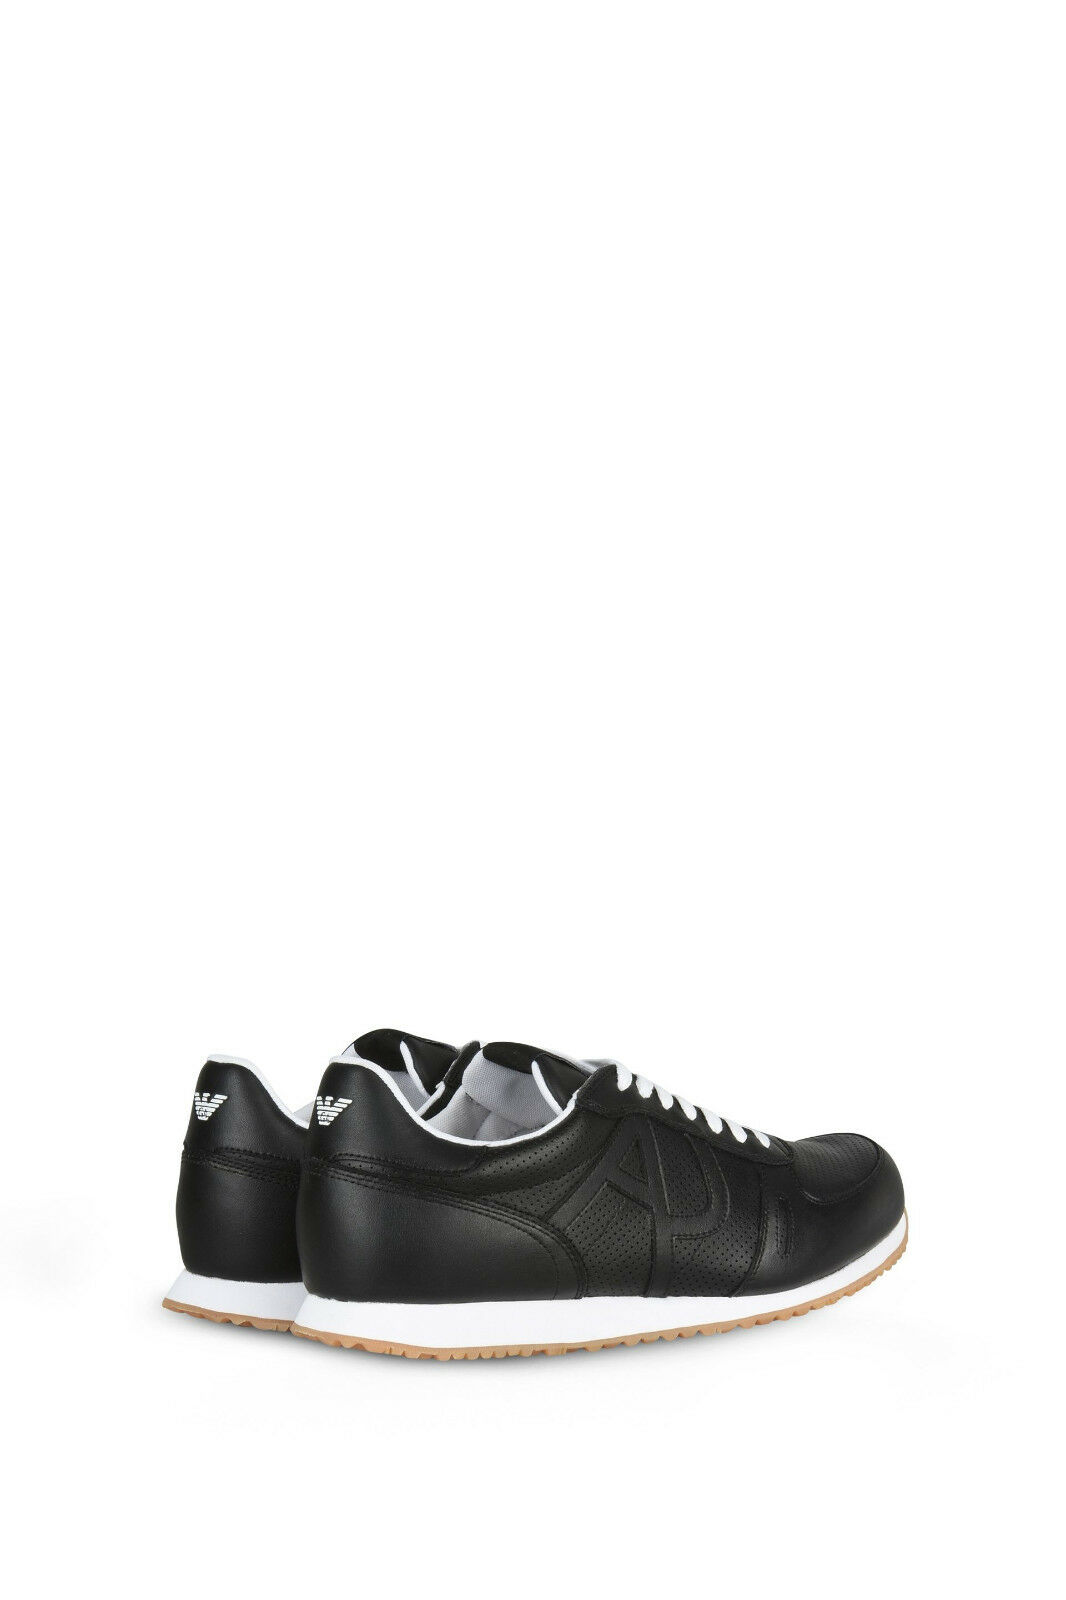 Armani Jeans Leder Sneakers- schwarz with WEISS Laces